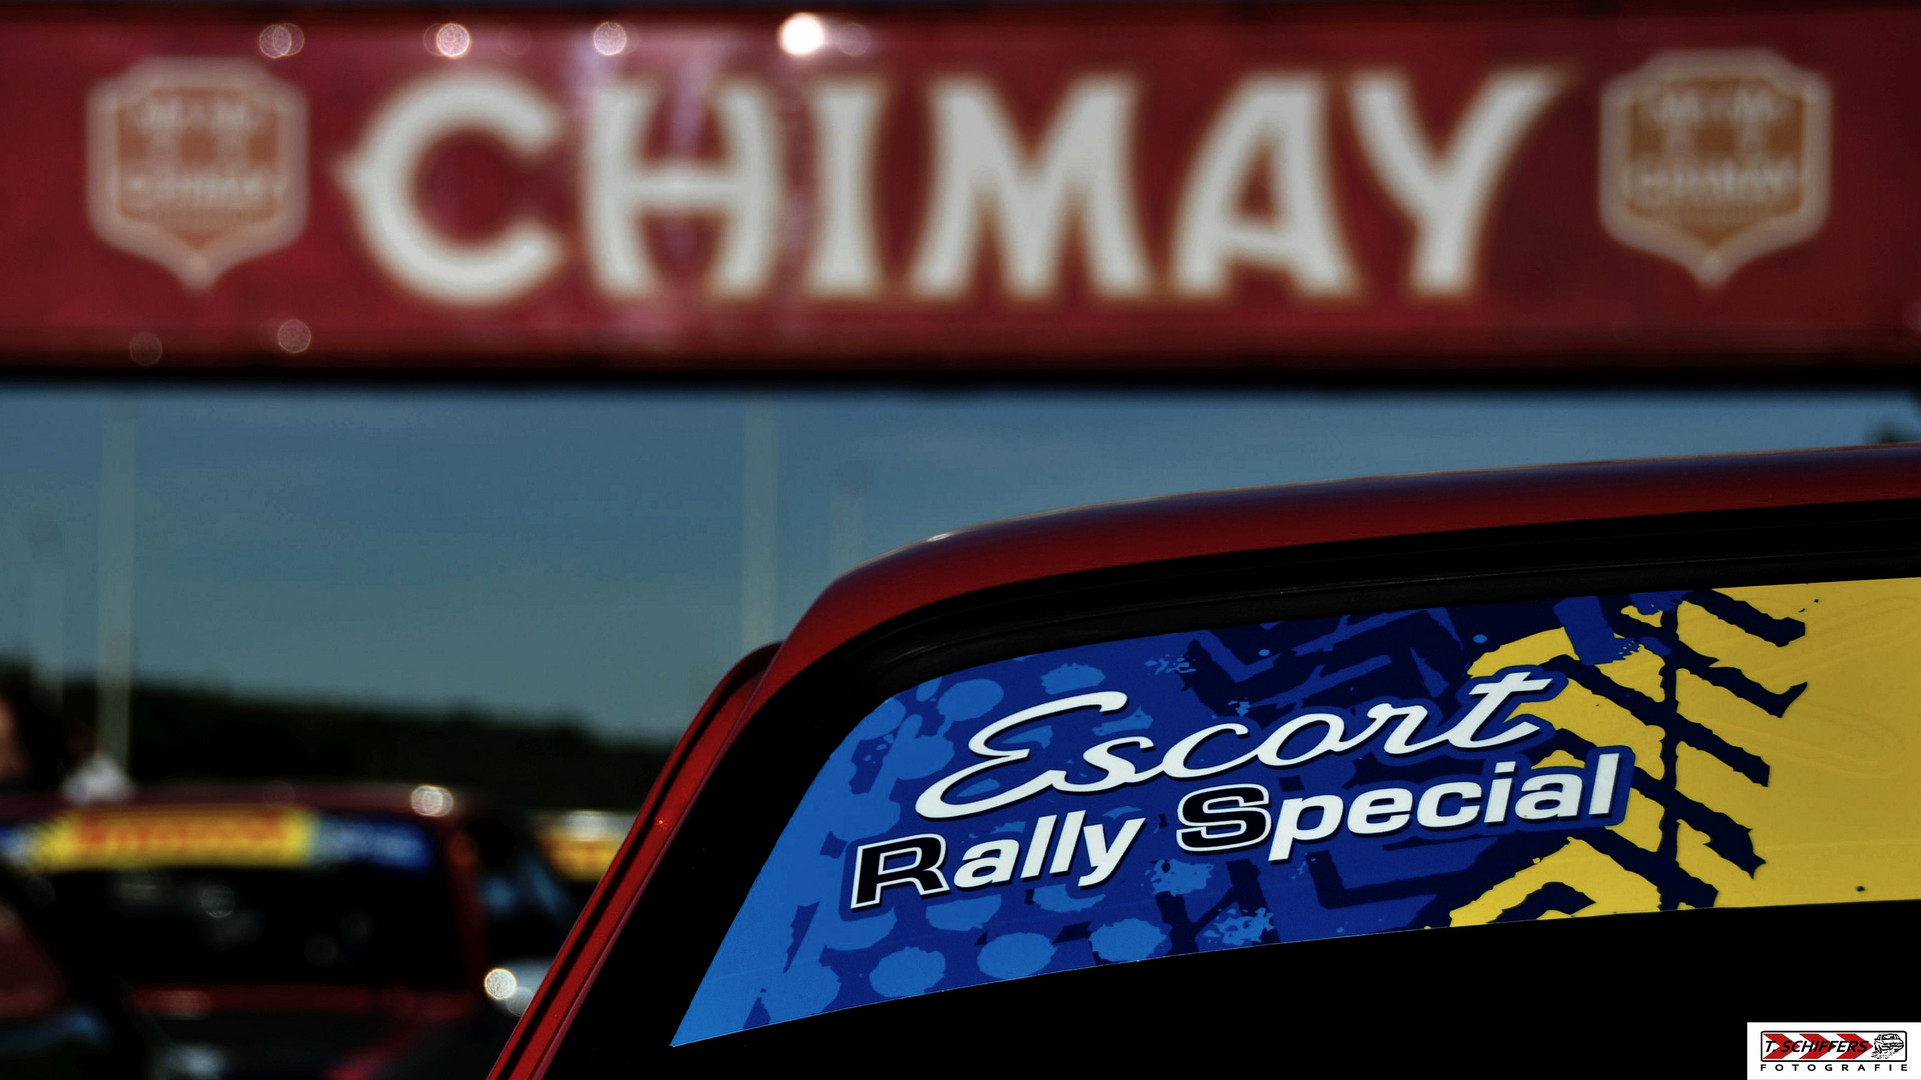 Escort Rally Special Chimay 2019